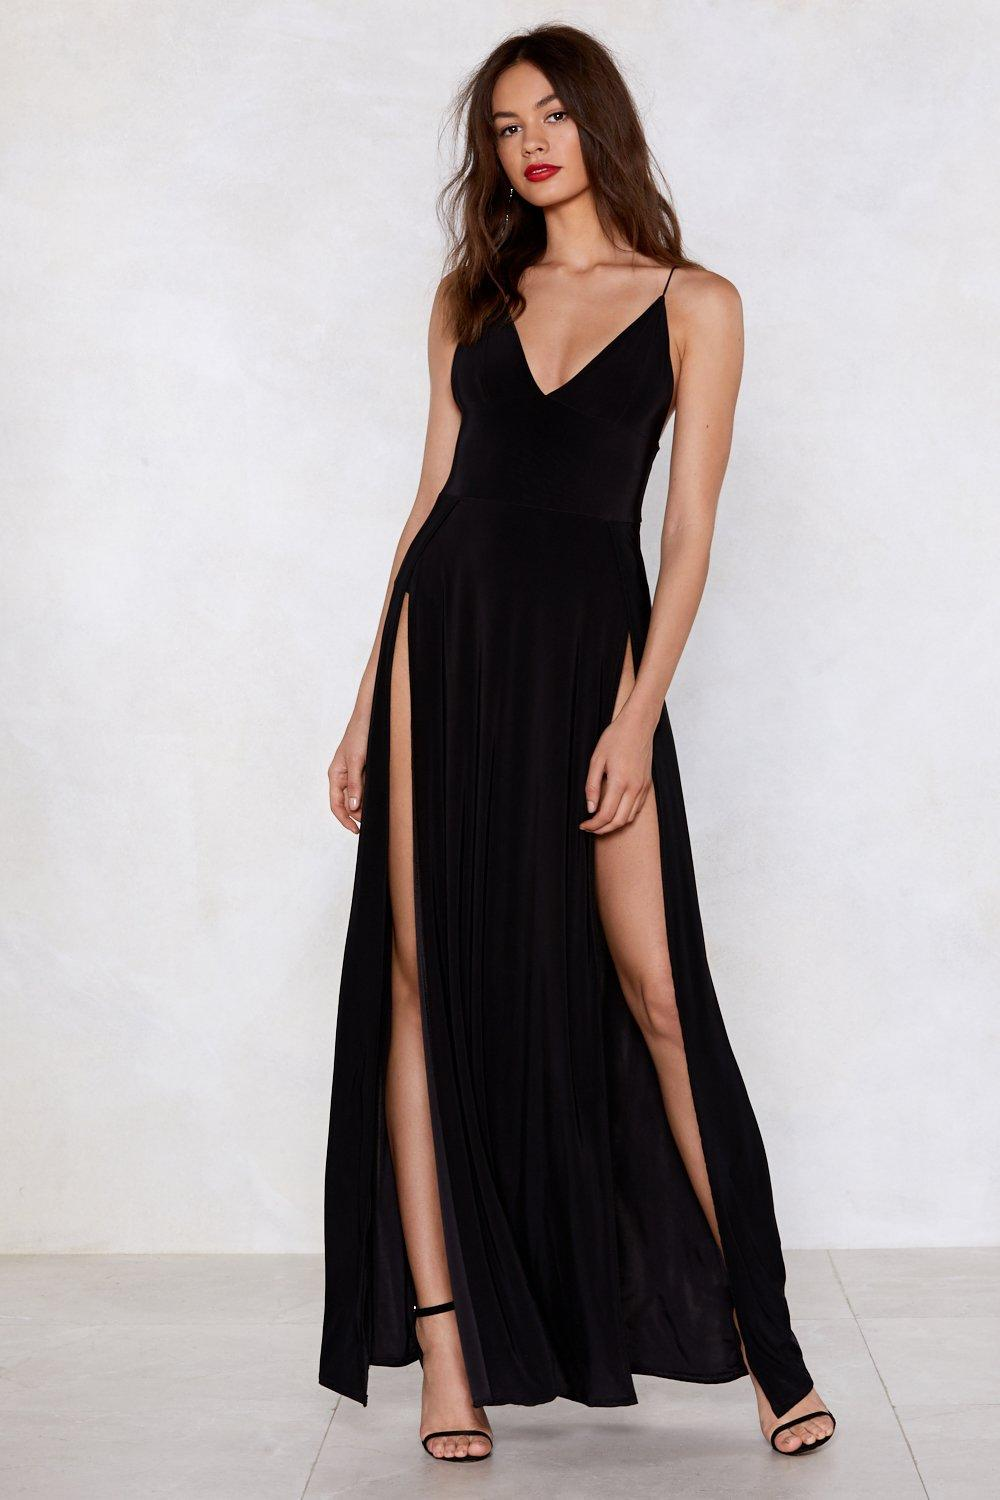 black dress with high slits slit dress fashion dresses 5751